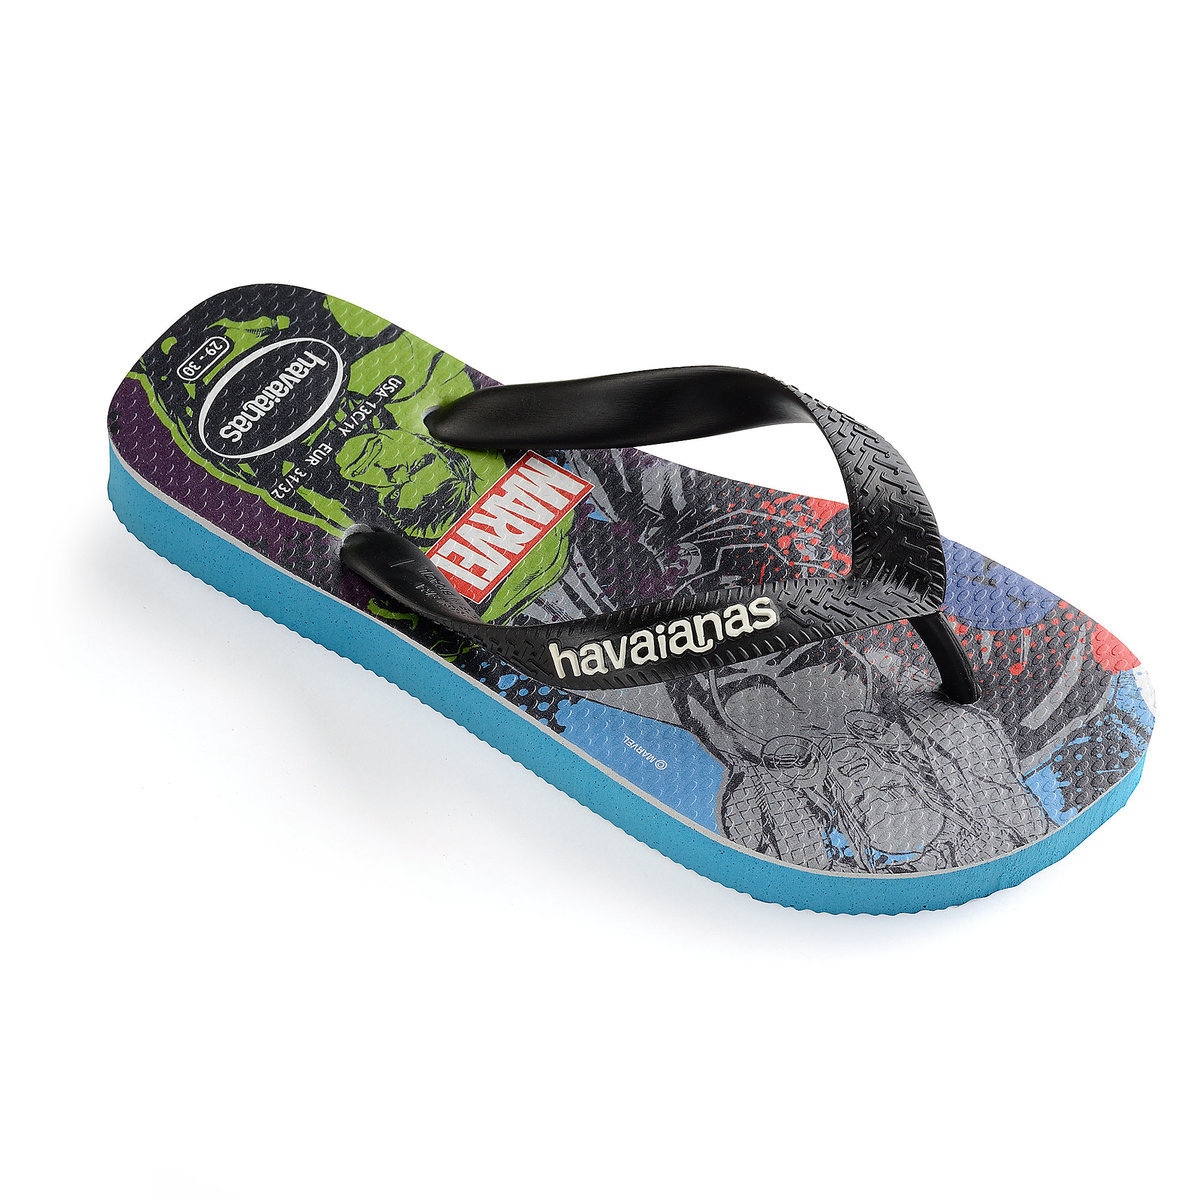 ed7806b45 Product Image of Avengers Flip Flops for Kids by Havaianas   1